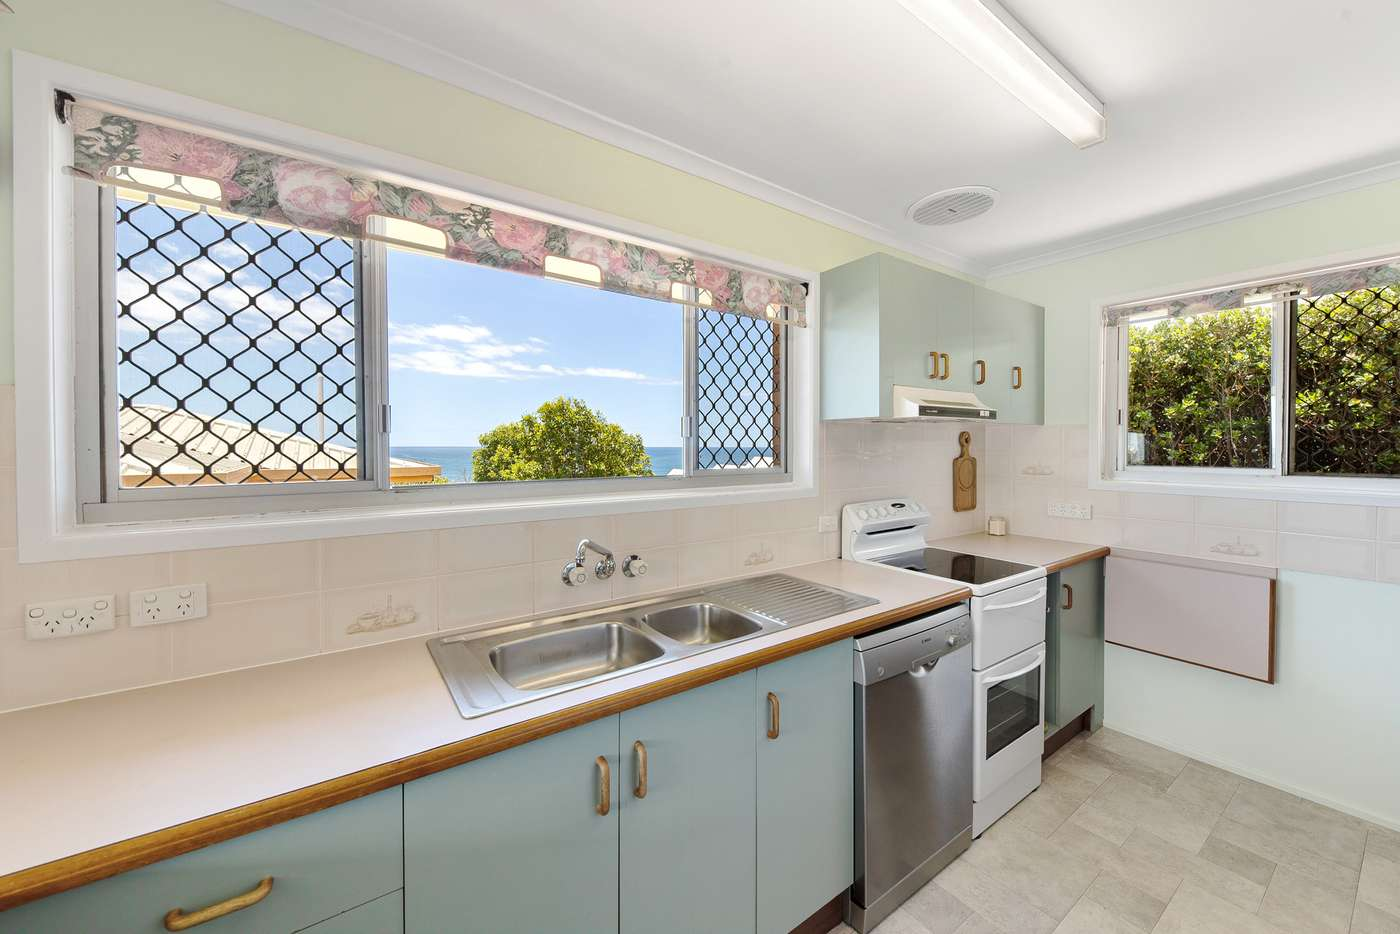 Sixth view of Homely house listing, 34 Barra Crescent, Coolum Beach QLD 4573